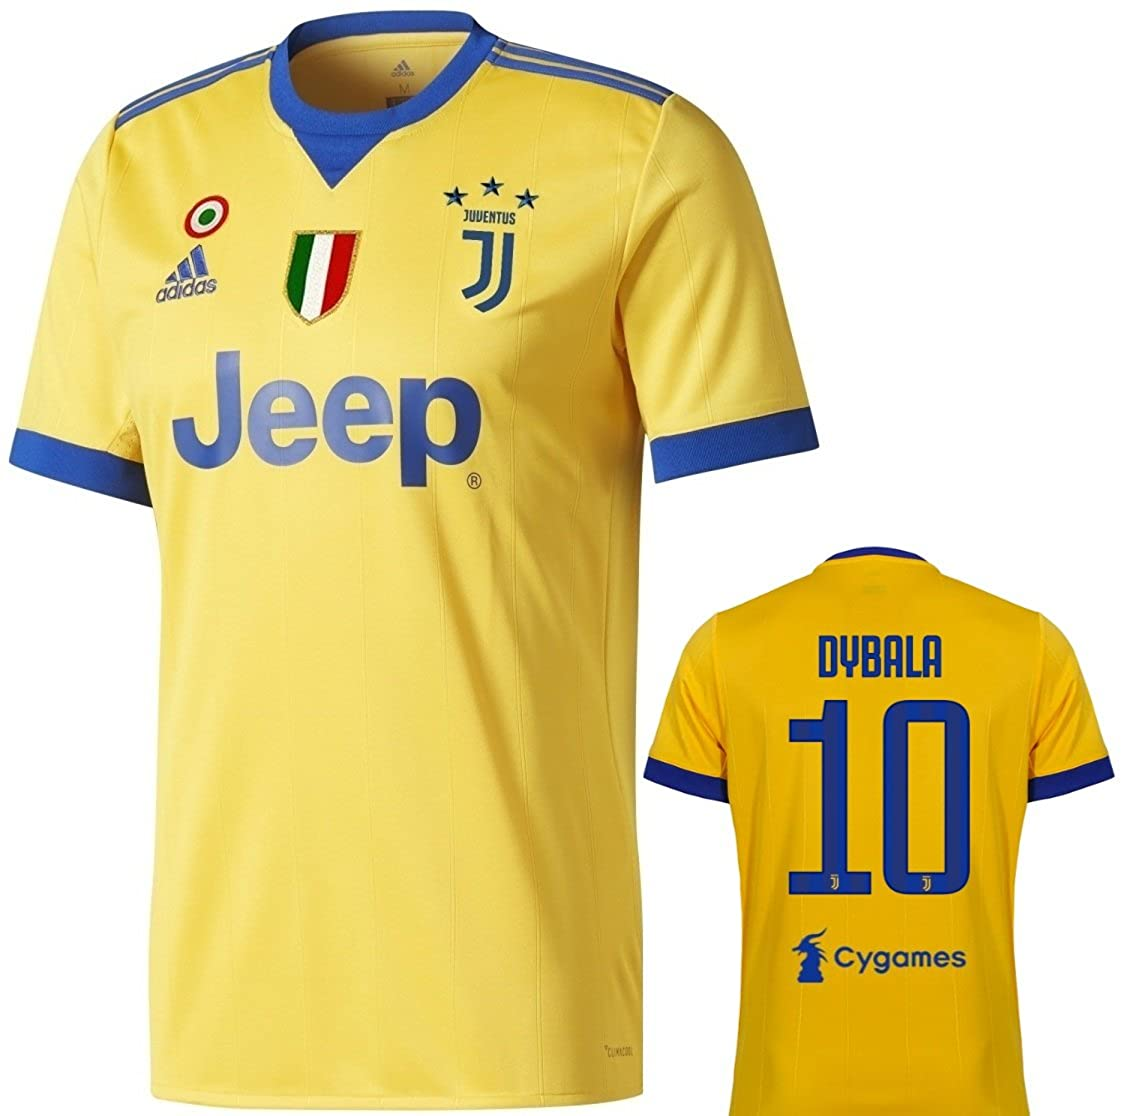 reputable site 0cf30 bf8e3 Amazon.com: adidas Juventus Dybala Away Jersey 2017/18 Adult ...